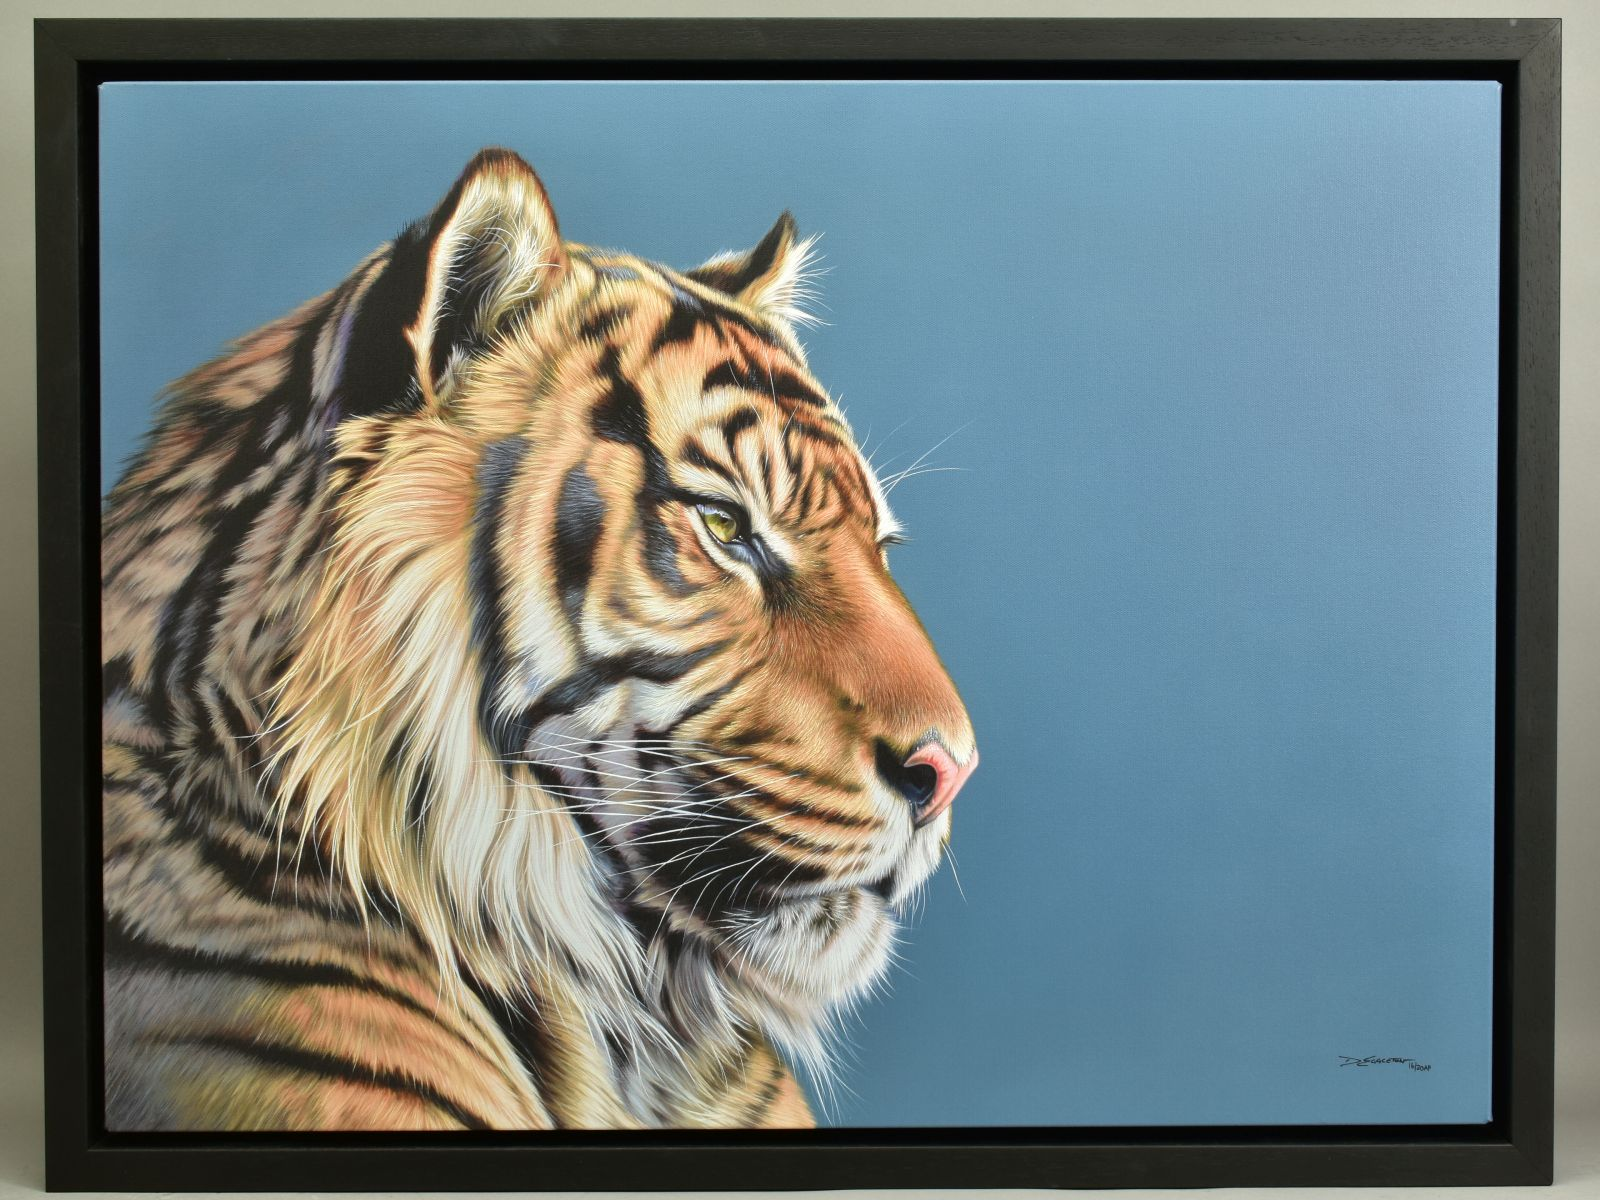 DARRYN EGGLETON (SOUTH AFRICA 1981), 'The Sentinel', an artist proof print of a Tiger, 16/20, signed